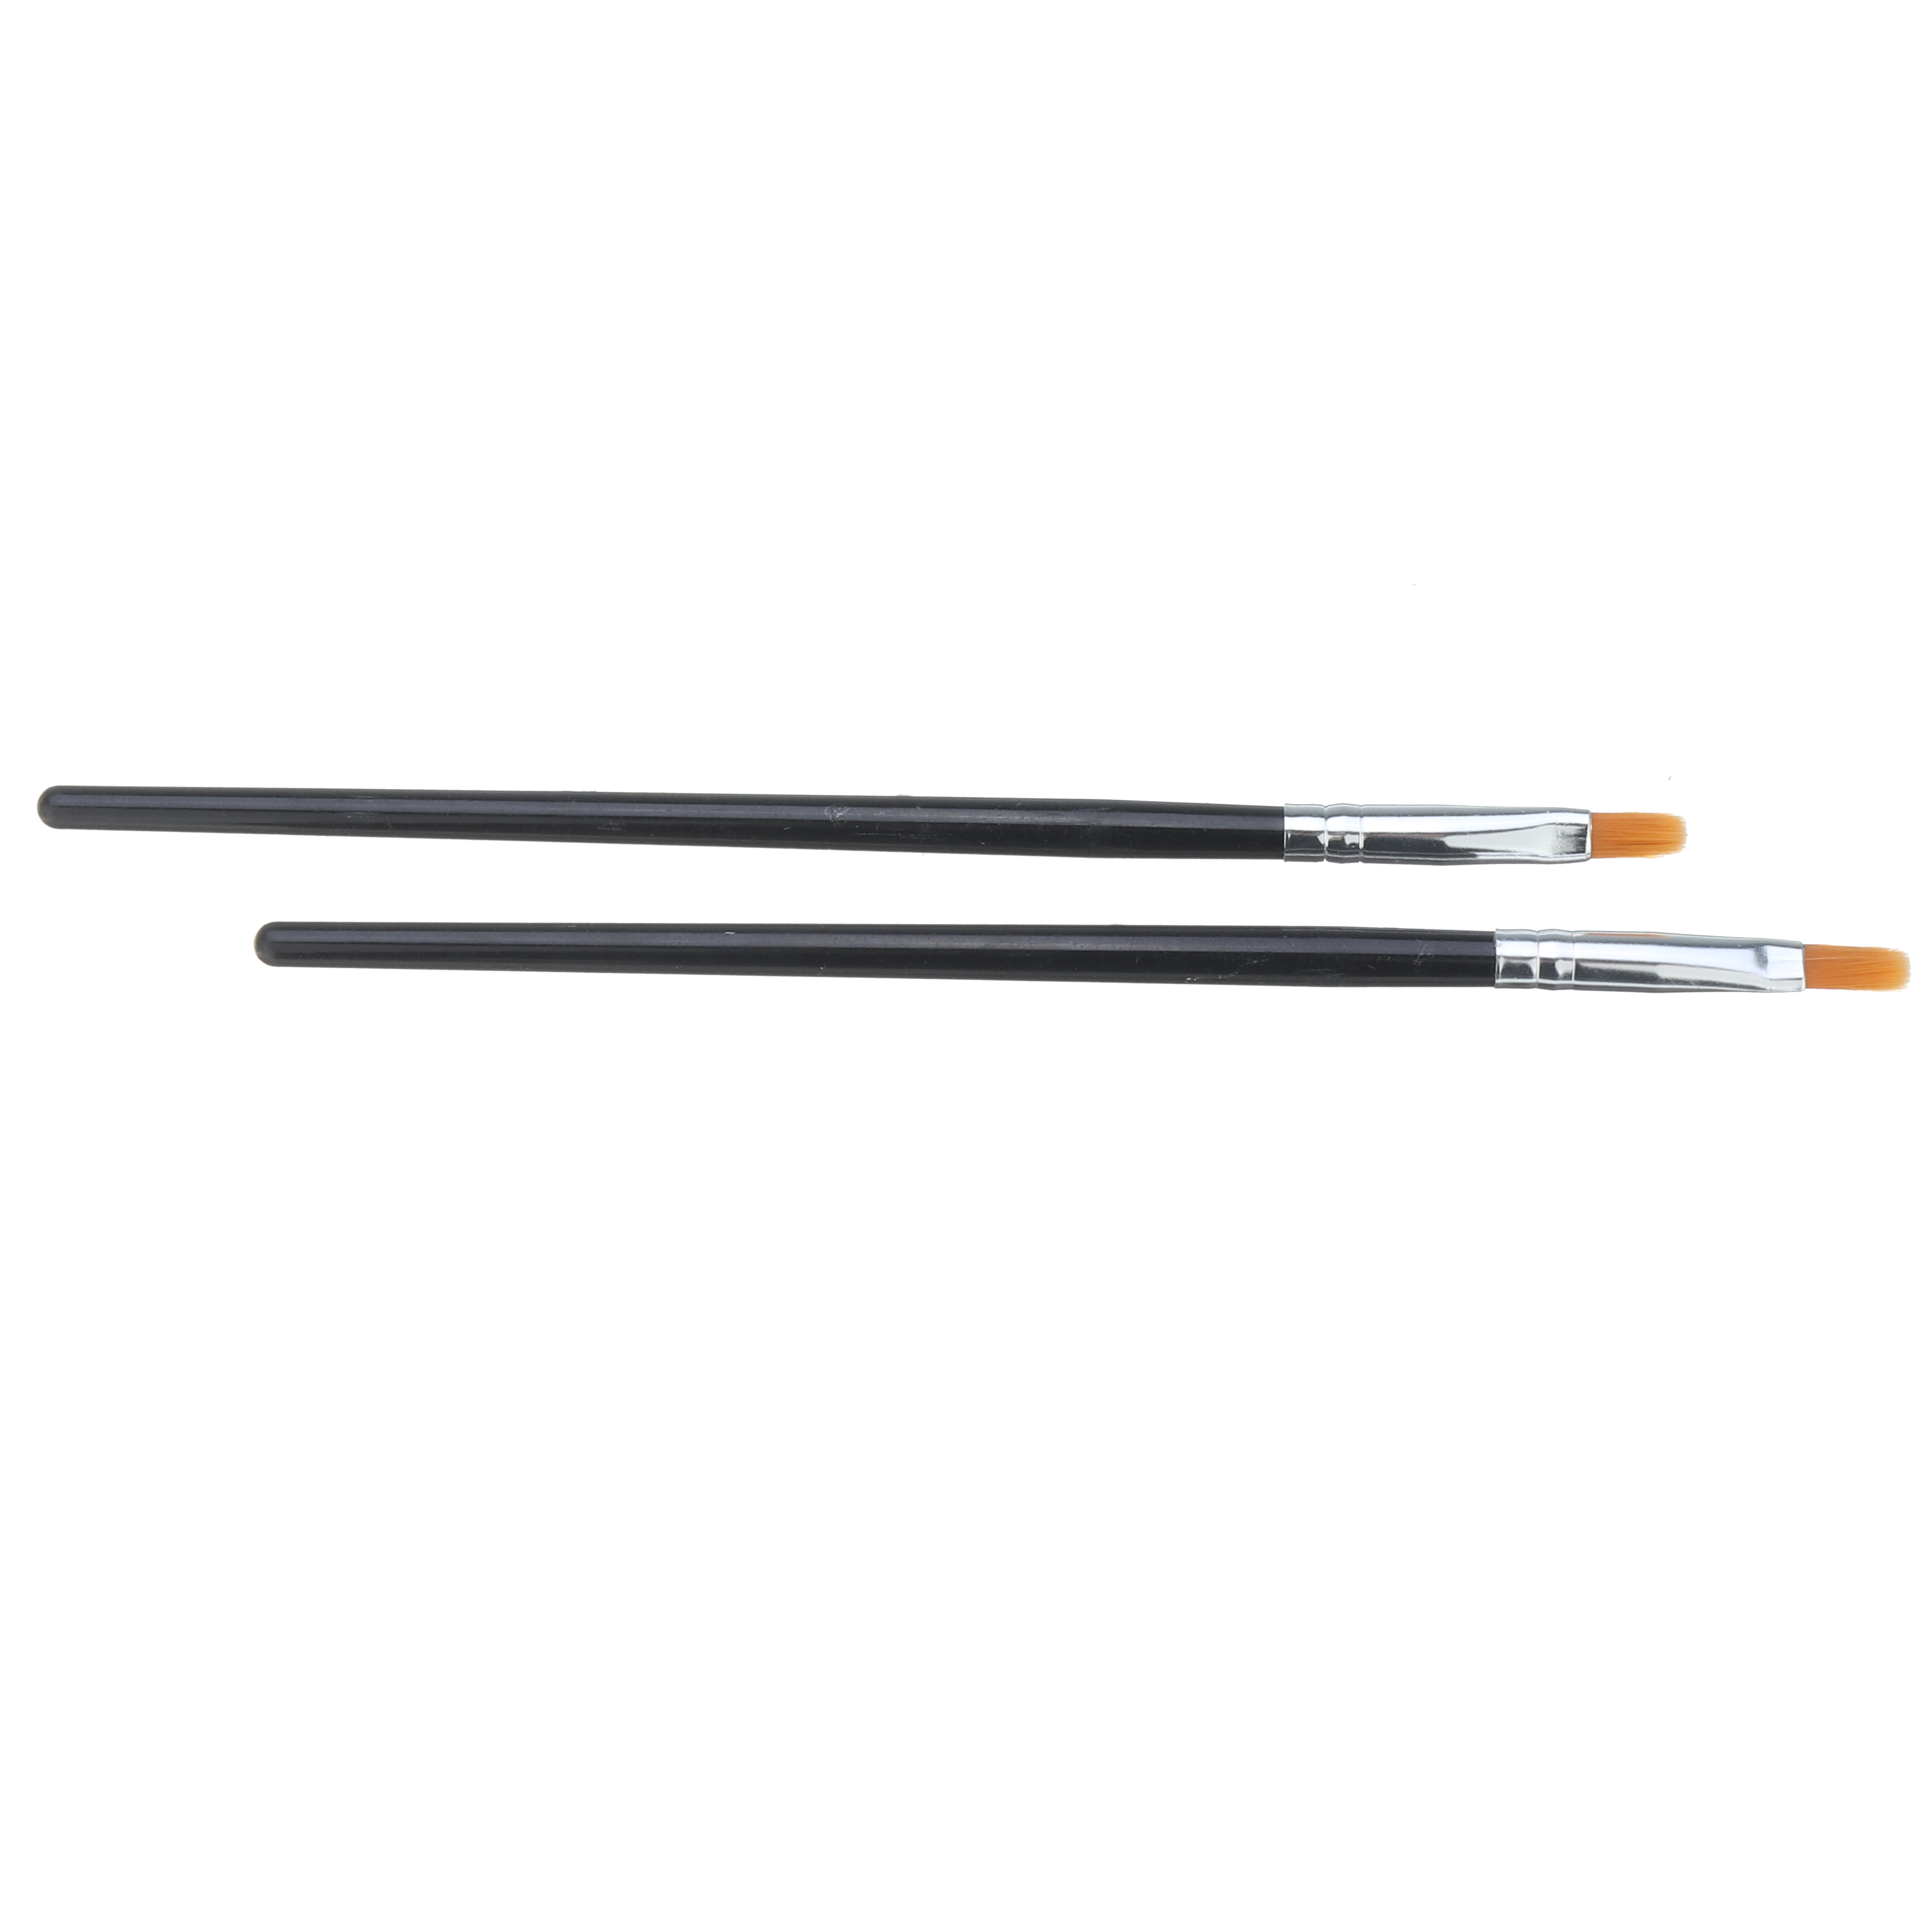 2Pcs Model Color Pen Flat Brush Hand Painting Tools for